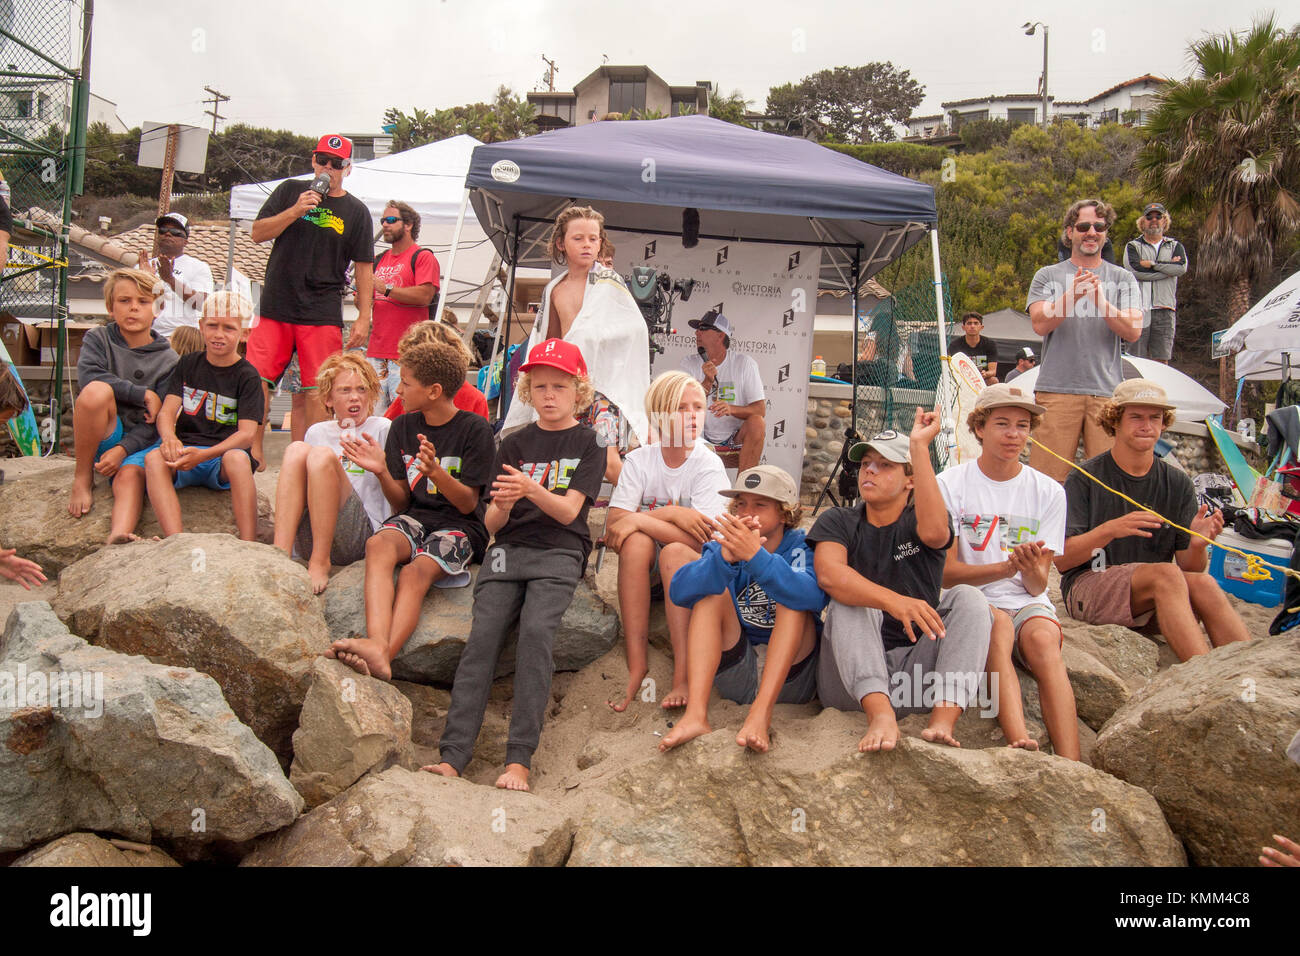 A frieze of boys watches a surfing competition in Laguna Beach, CA. - Stock Image